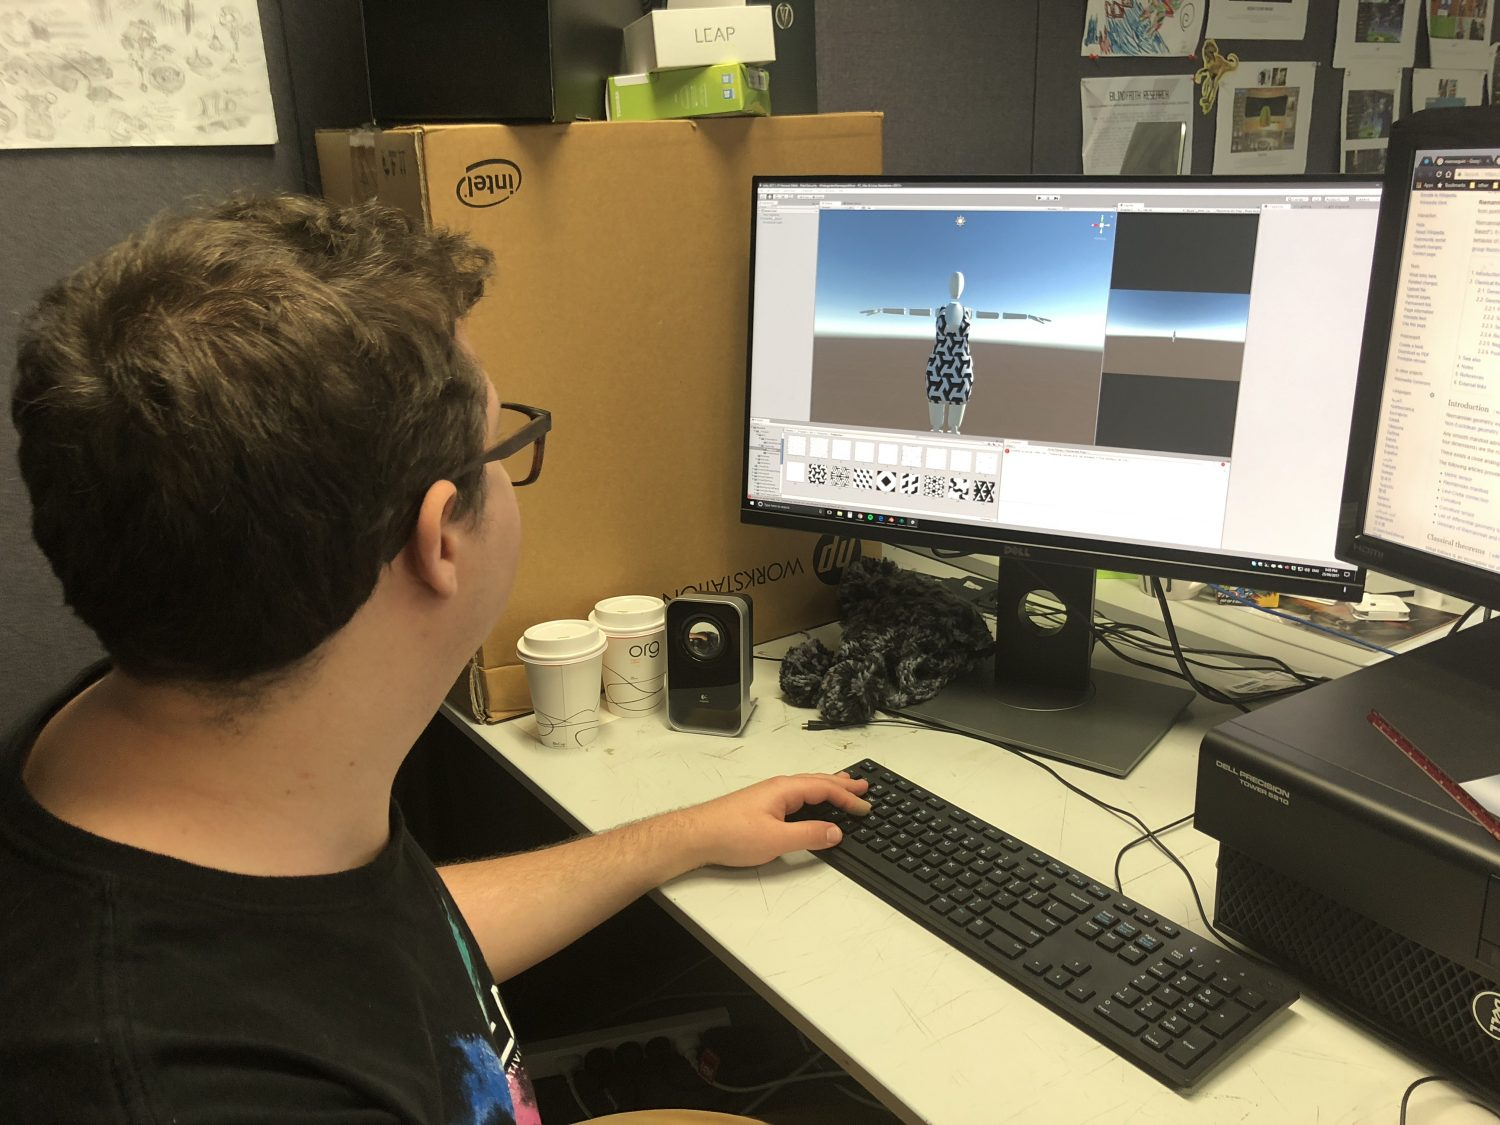 Wade preparing a mannequin design in unity at his desktop computer